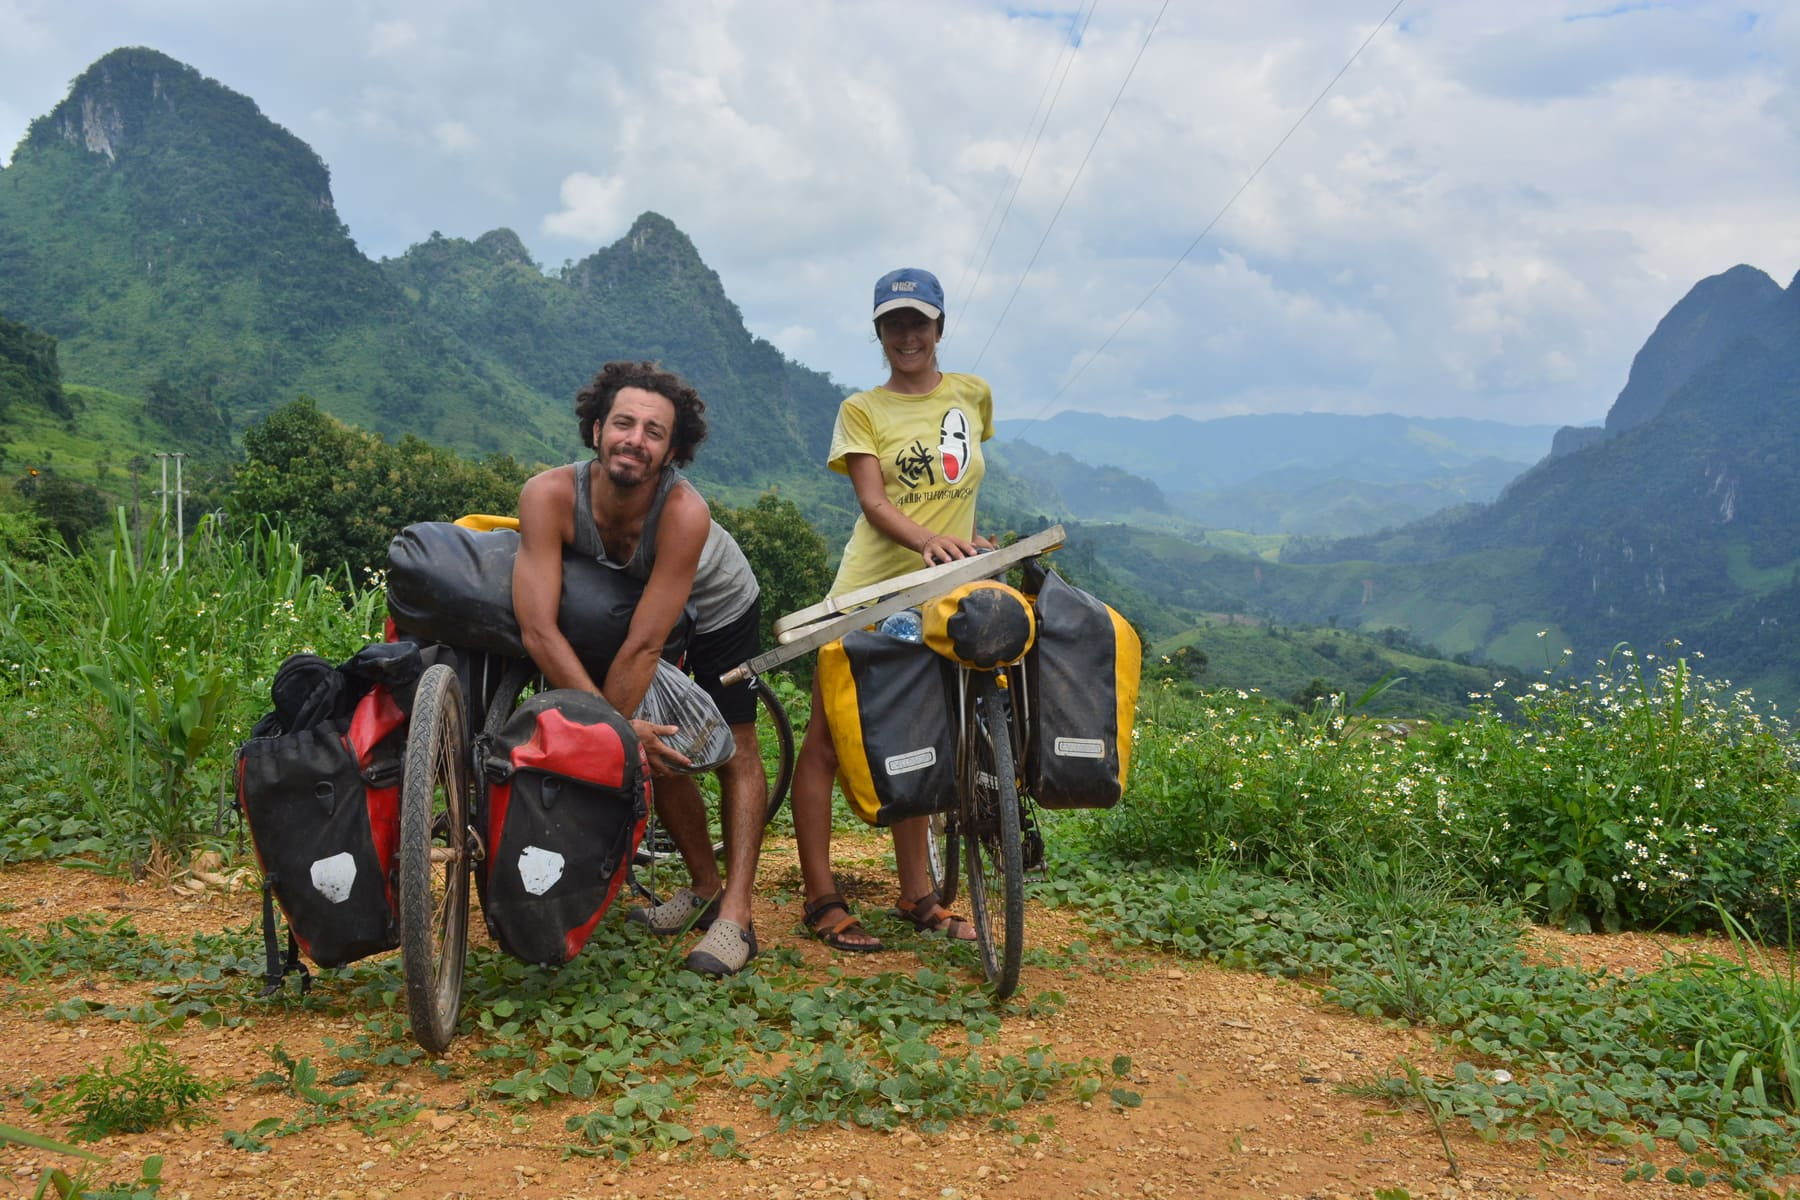 Cycloscope bicycle touring in Laos, South East Asia